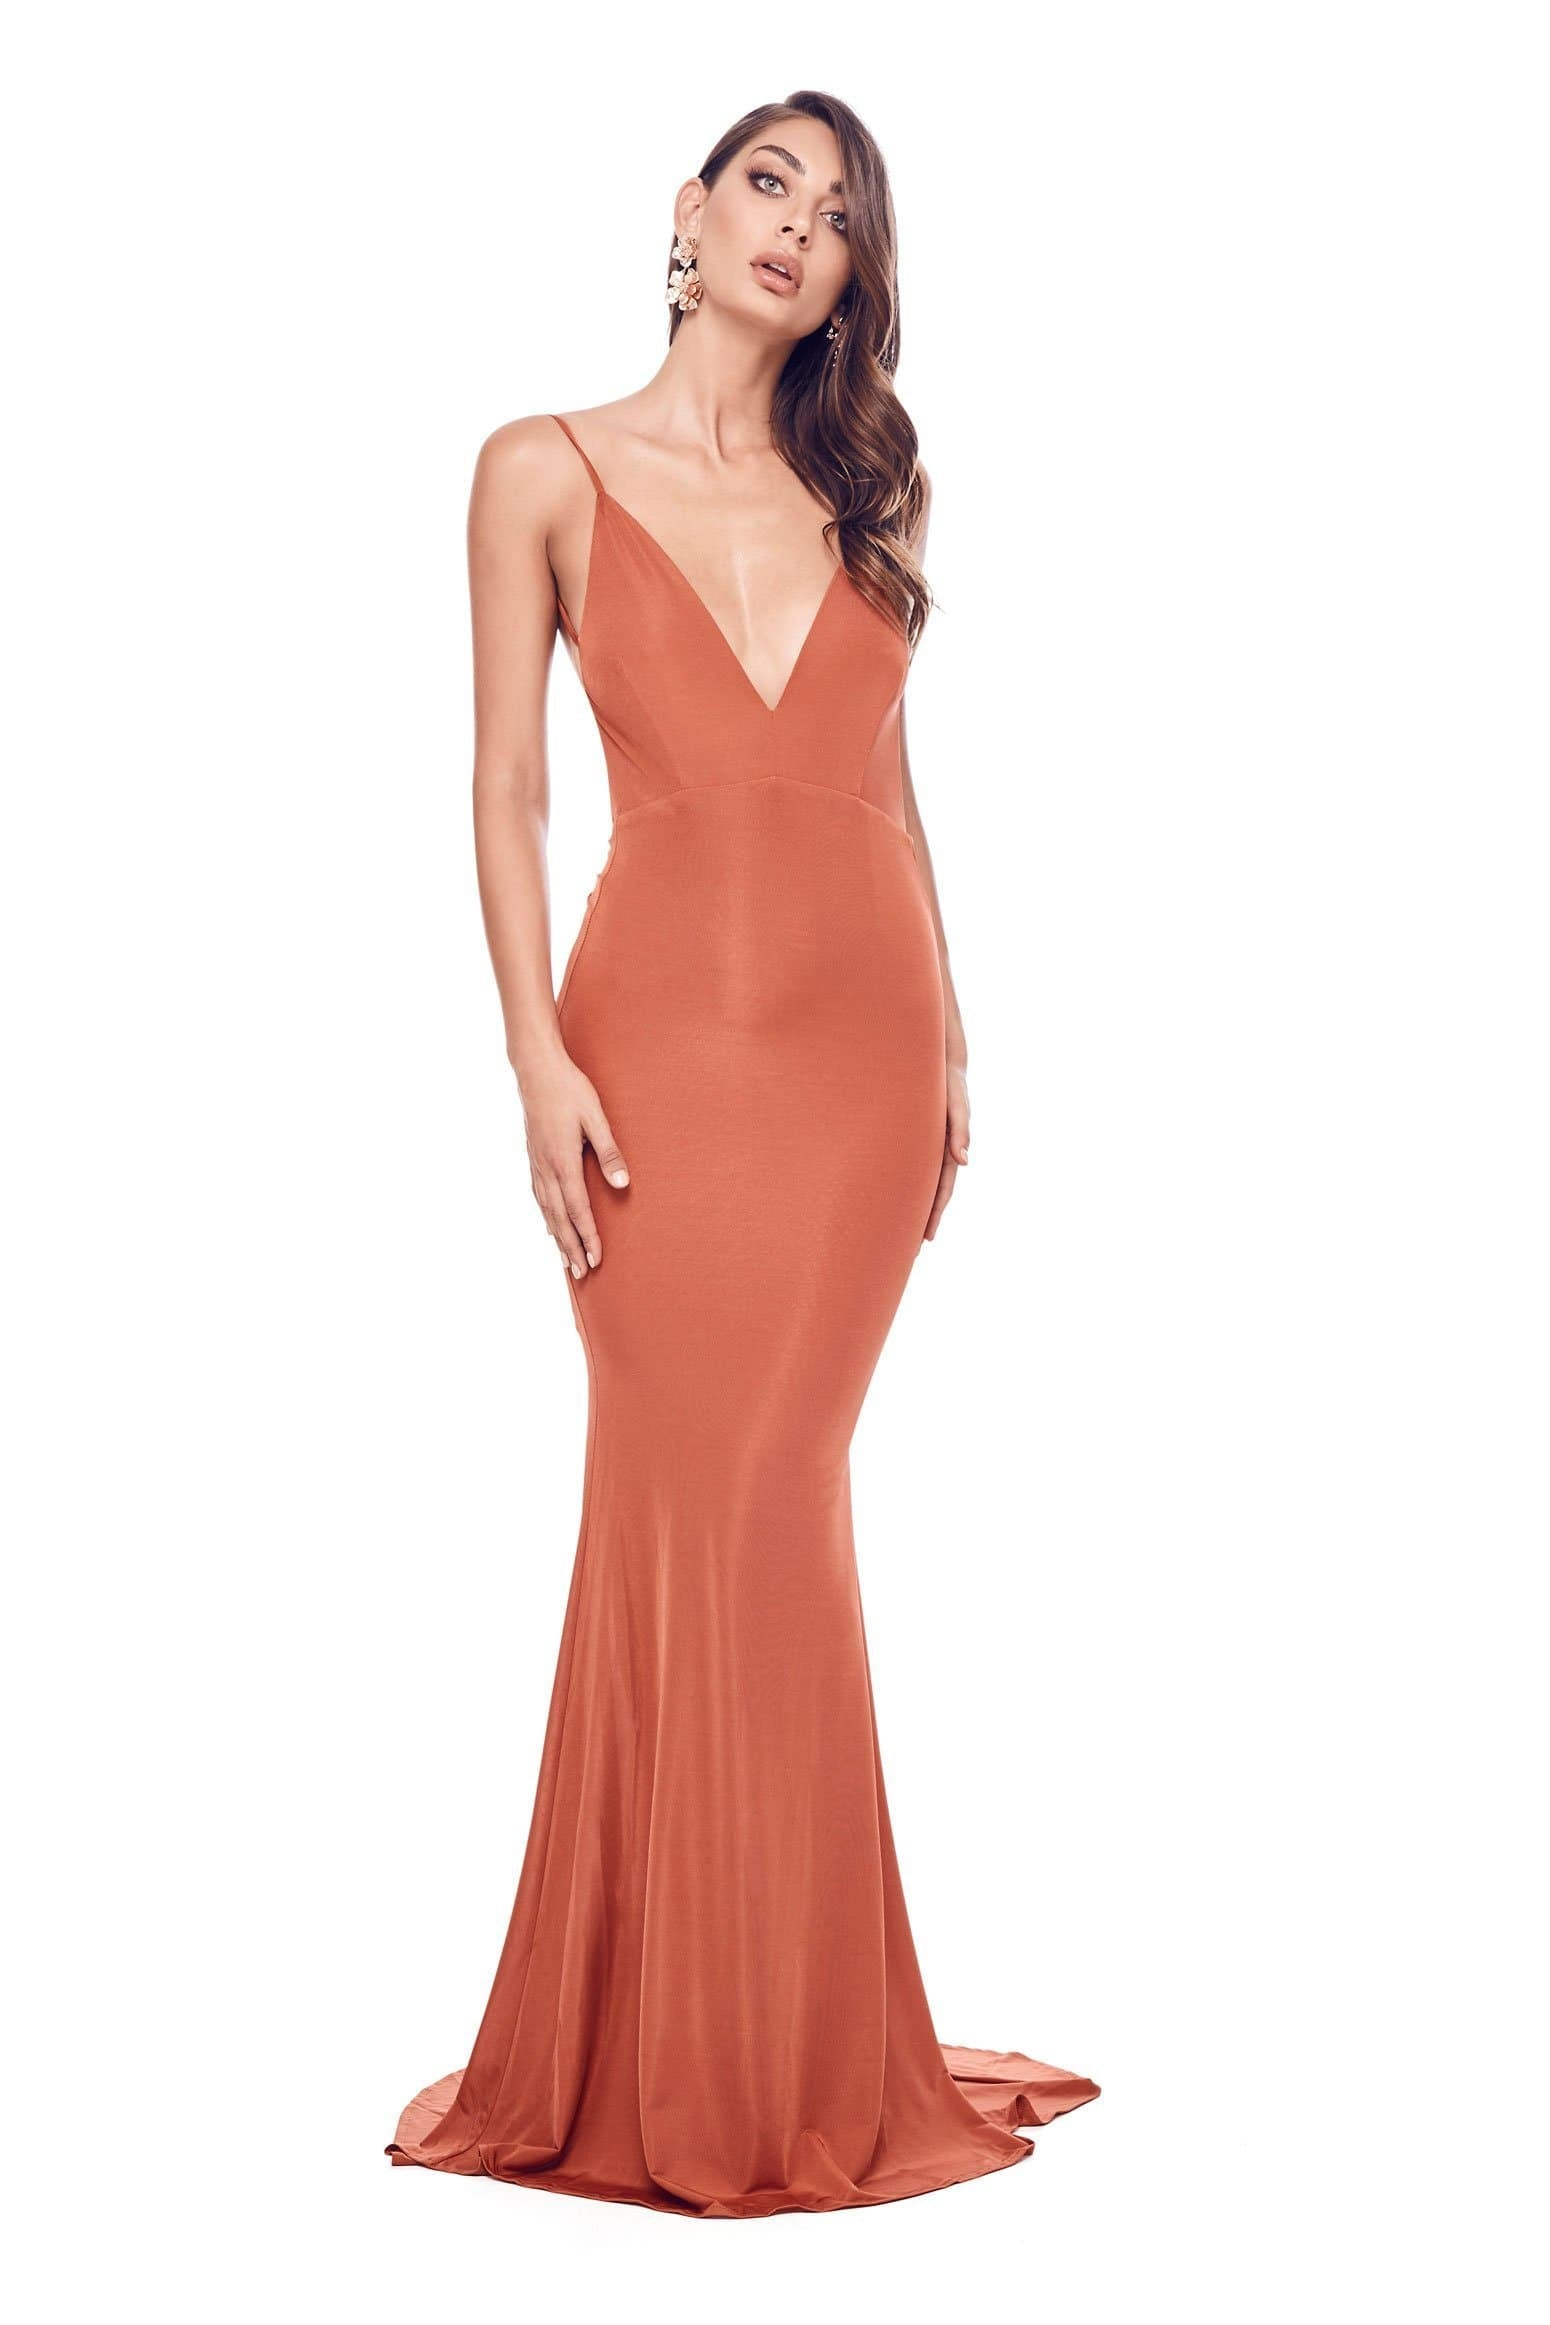 Selina Formal Gown - Golden Rust Jersey V Neck Low Back Mermaid Dress